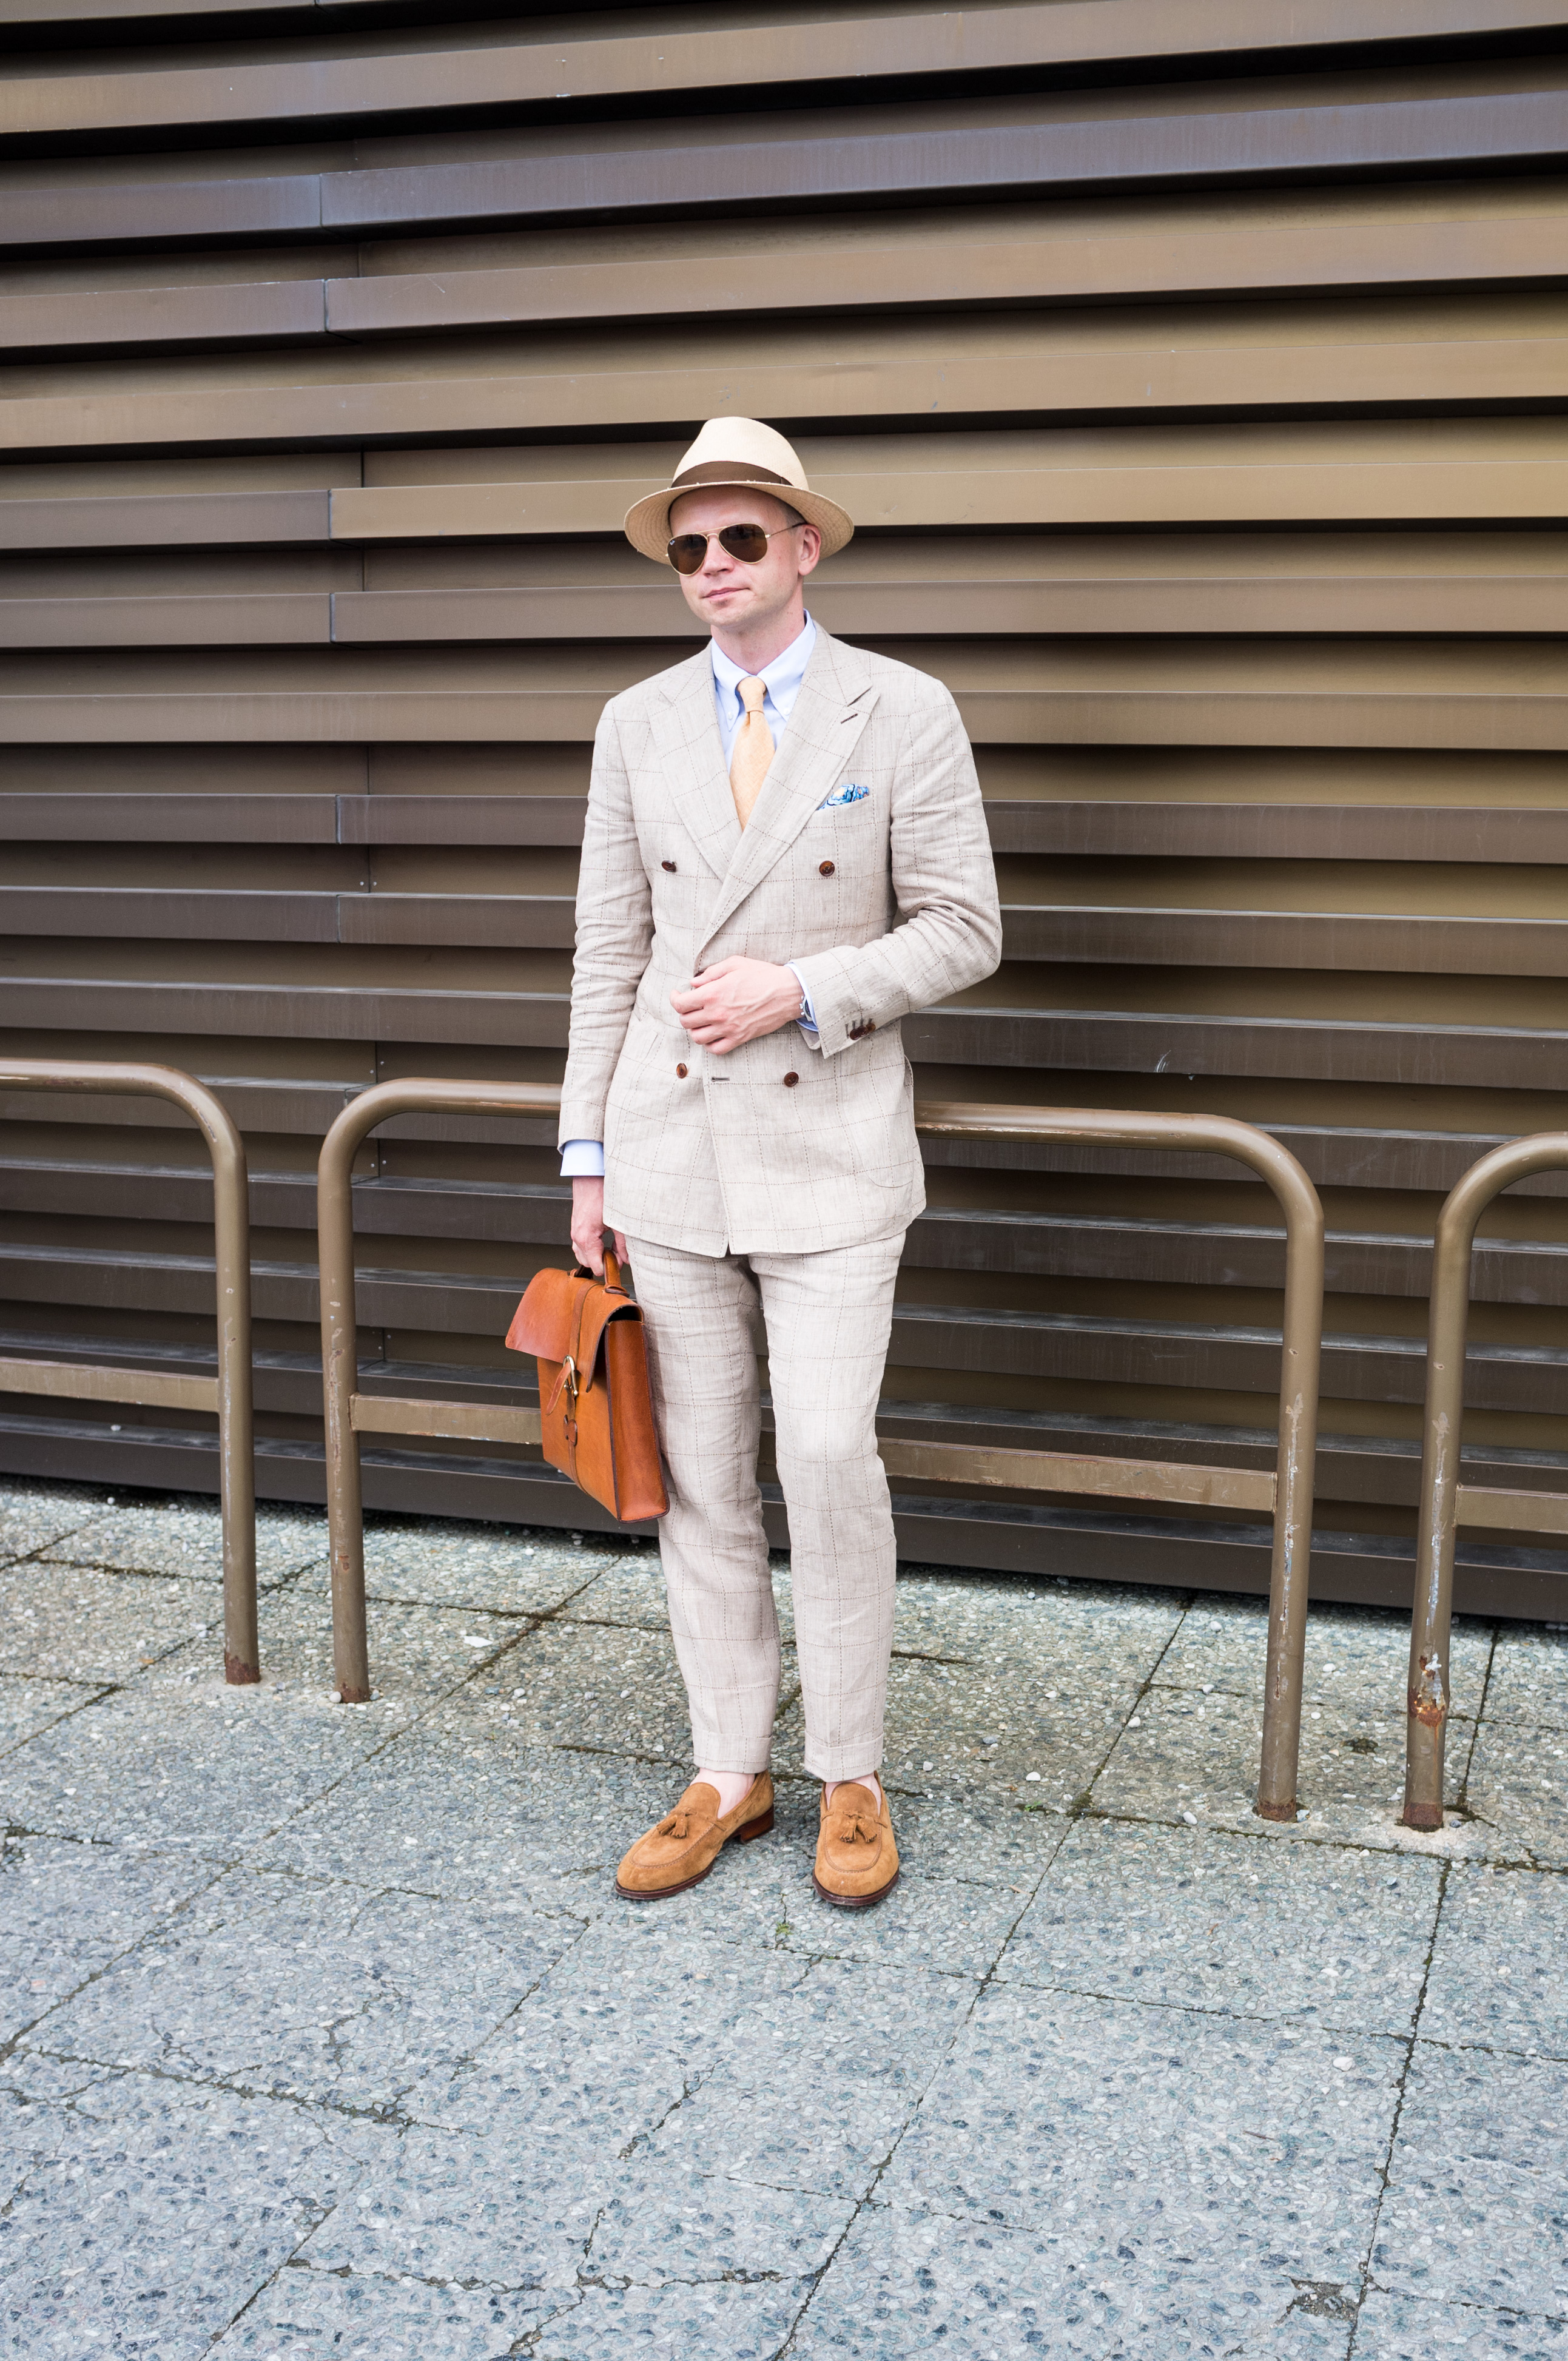 Coxsackie's photos in Pitti Uomo 90 - Day 1